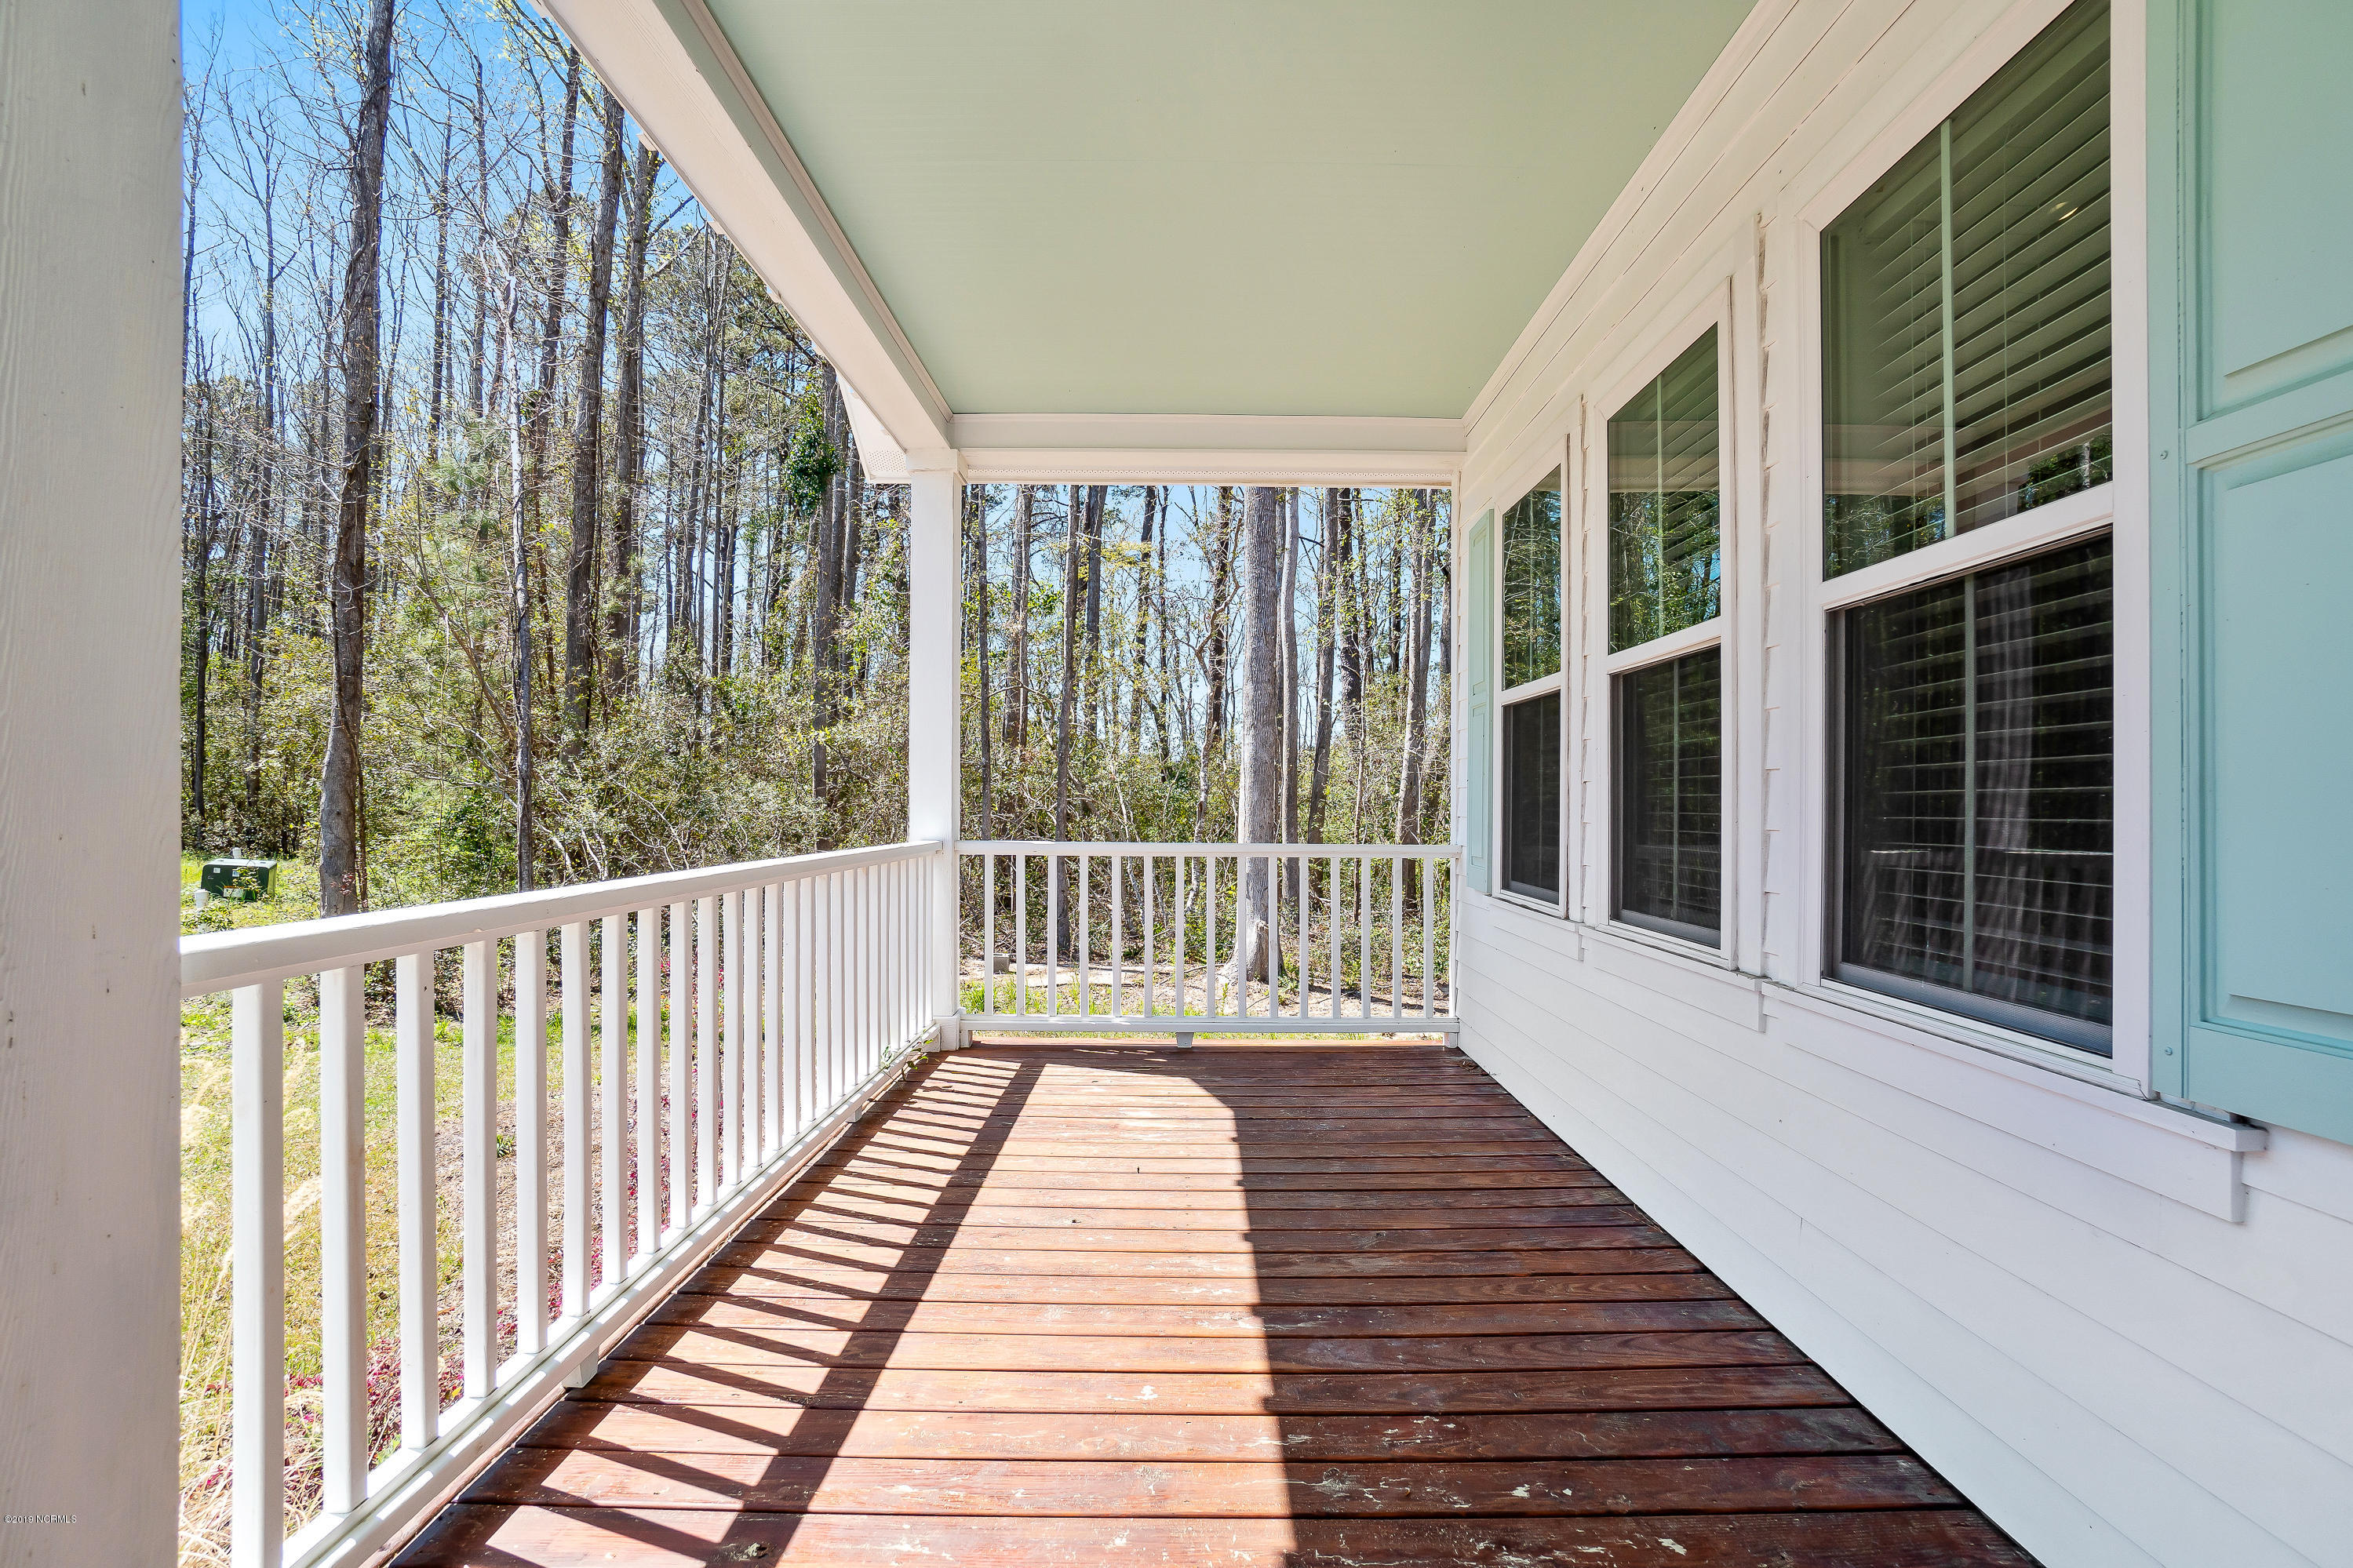 316 Camp Creek Drive, Oriental, North Carolina 28571, 3 Bedrooms Bedrooms, 5 Rooms Rooms,2 BathroomsBathrooms,Single family residence,For sale,Camp Creek,100157182